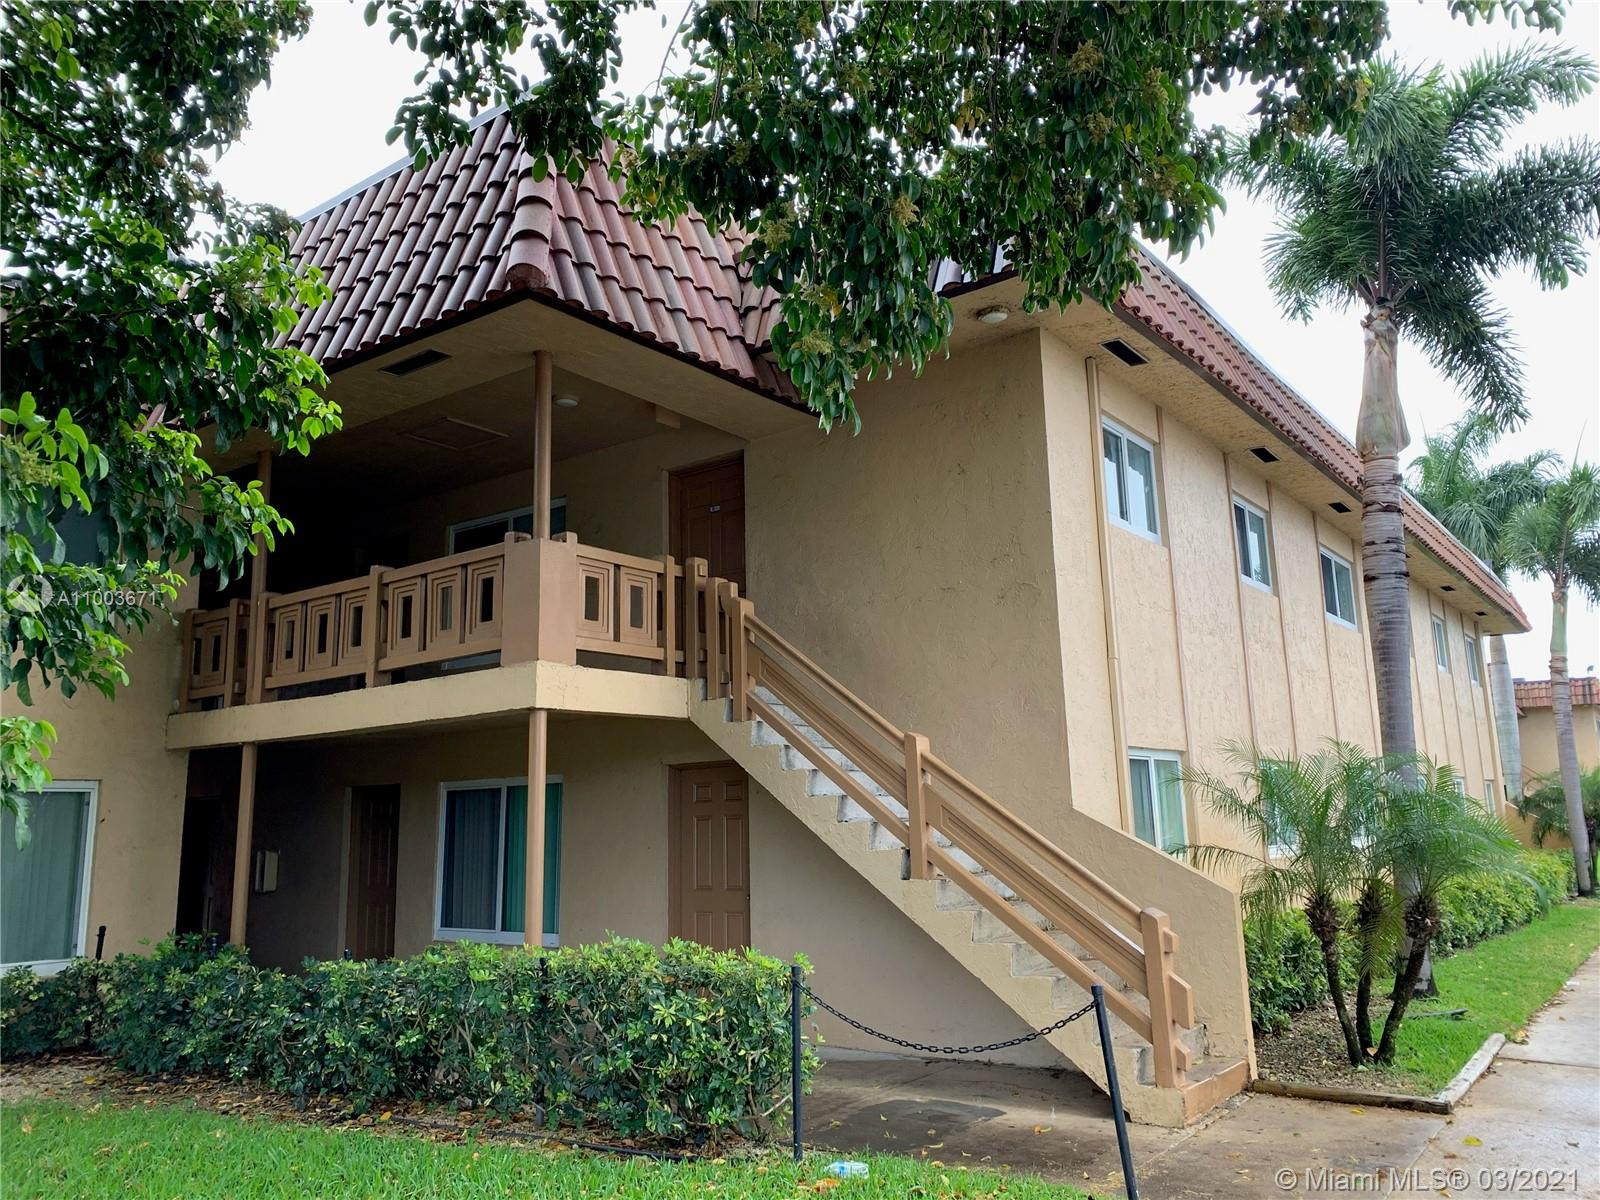 Great Opportunity!! 3 bedroom condo with 2 door access (one goes directly to a bedroom) the other one goes to the main entrance. Brand new roof, AC, bathroom pipes, high impact windows throughout and new driveways. The schools are near 2901 NW 48th Ave Apt 157 include Castle Hill Elementary School, Lauderhill 6-12 STEM-MED Magnet School and One on One Enrichment Academy. Easy showing, Won't Last!